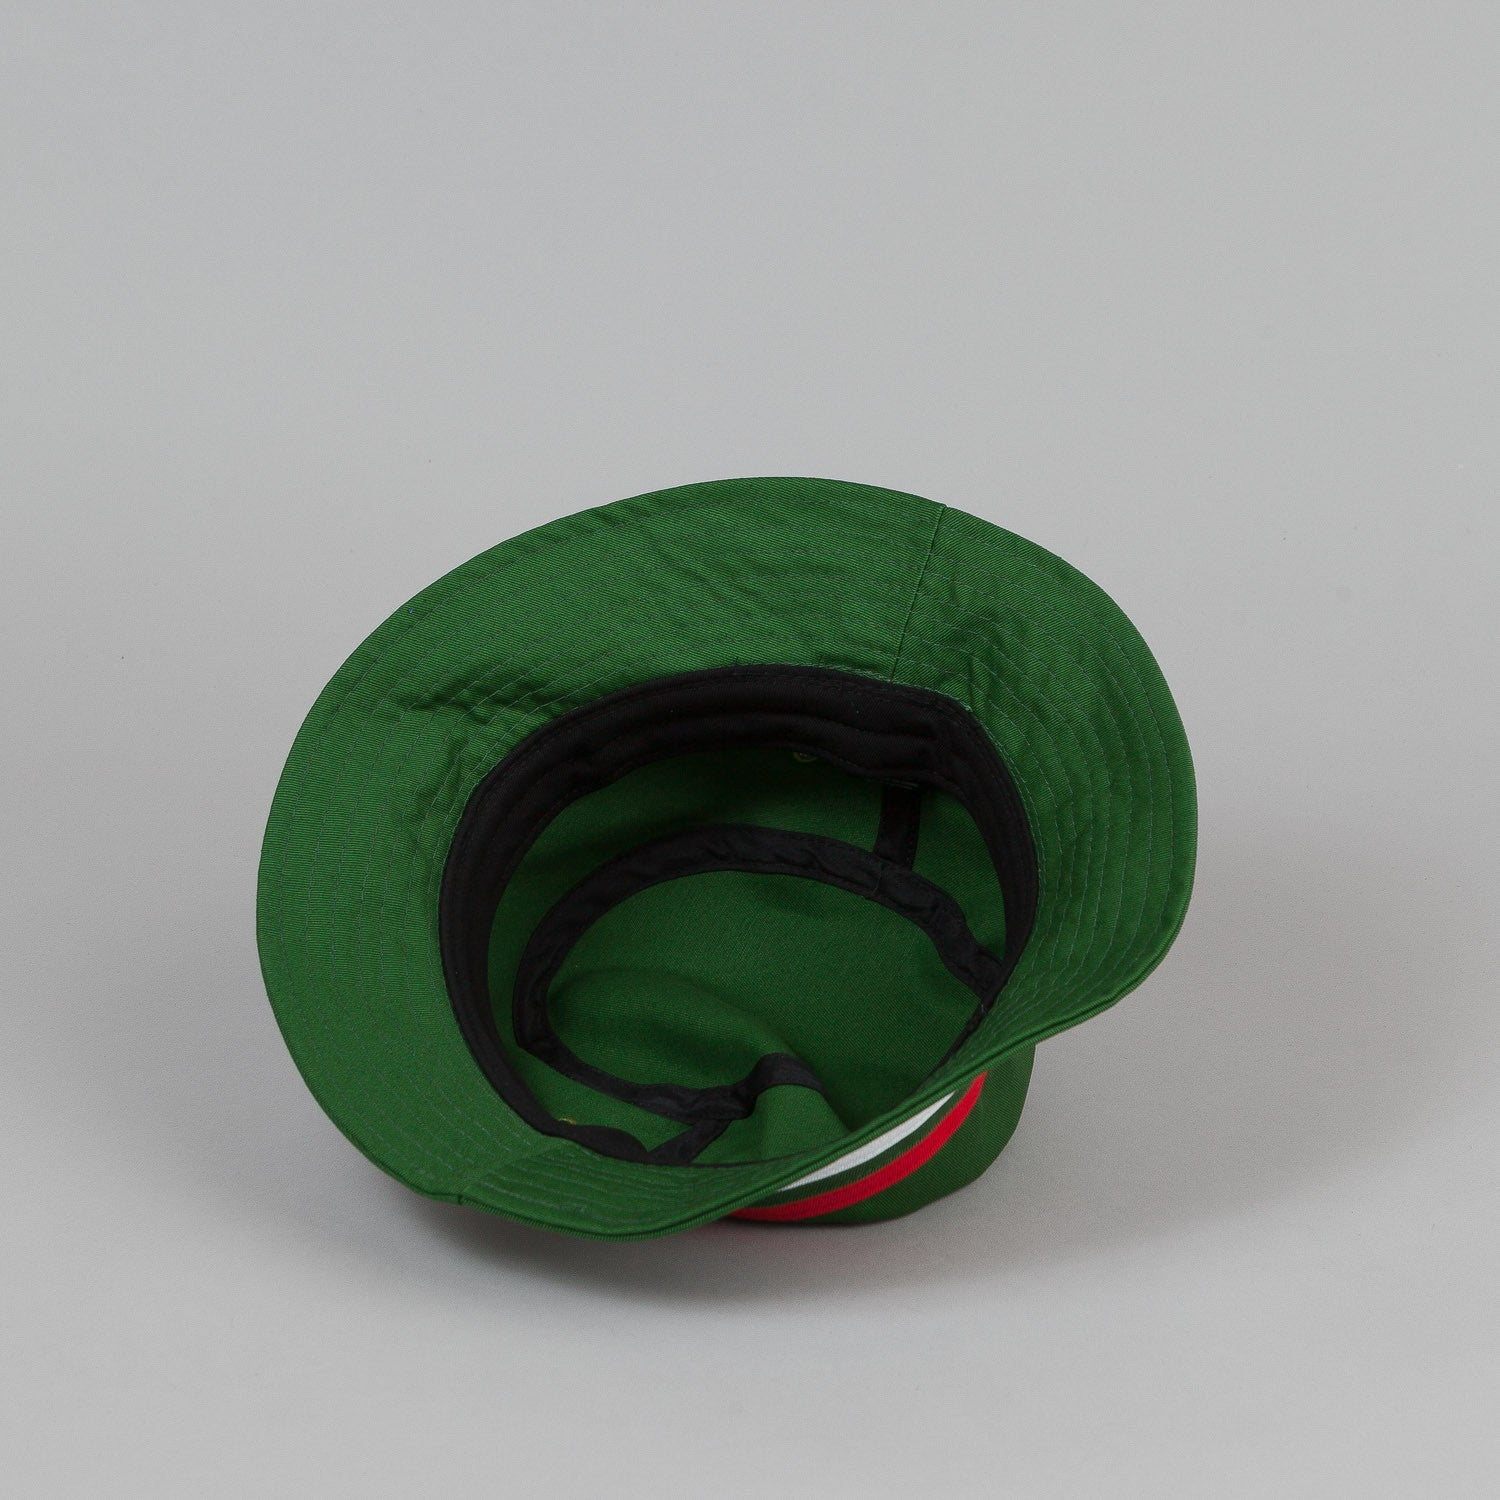 Palace Bucket Hat - Green / Striped Trim